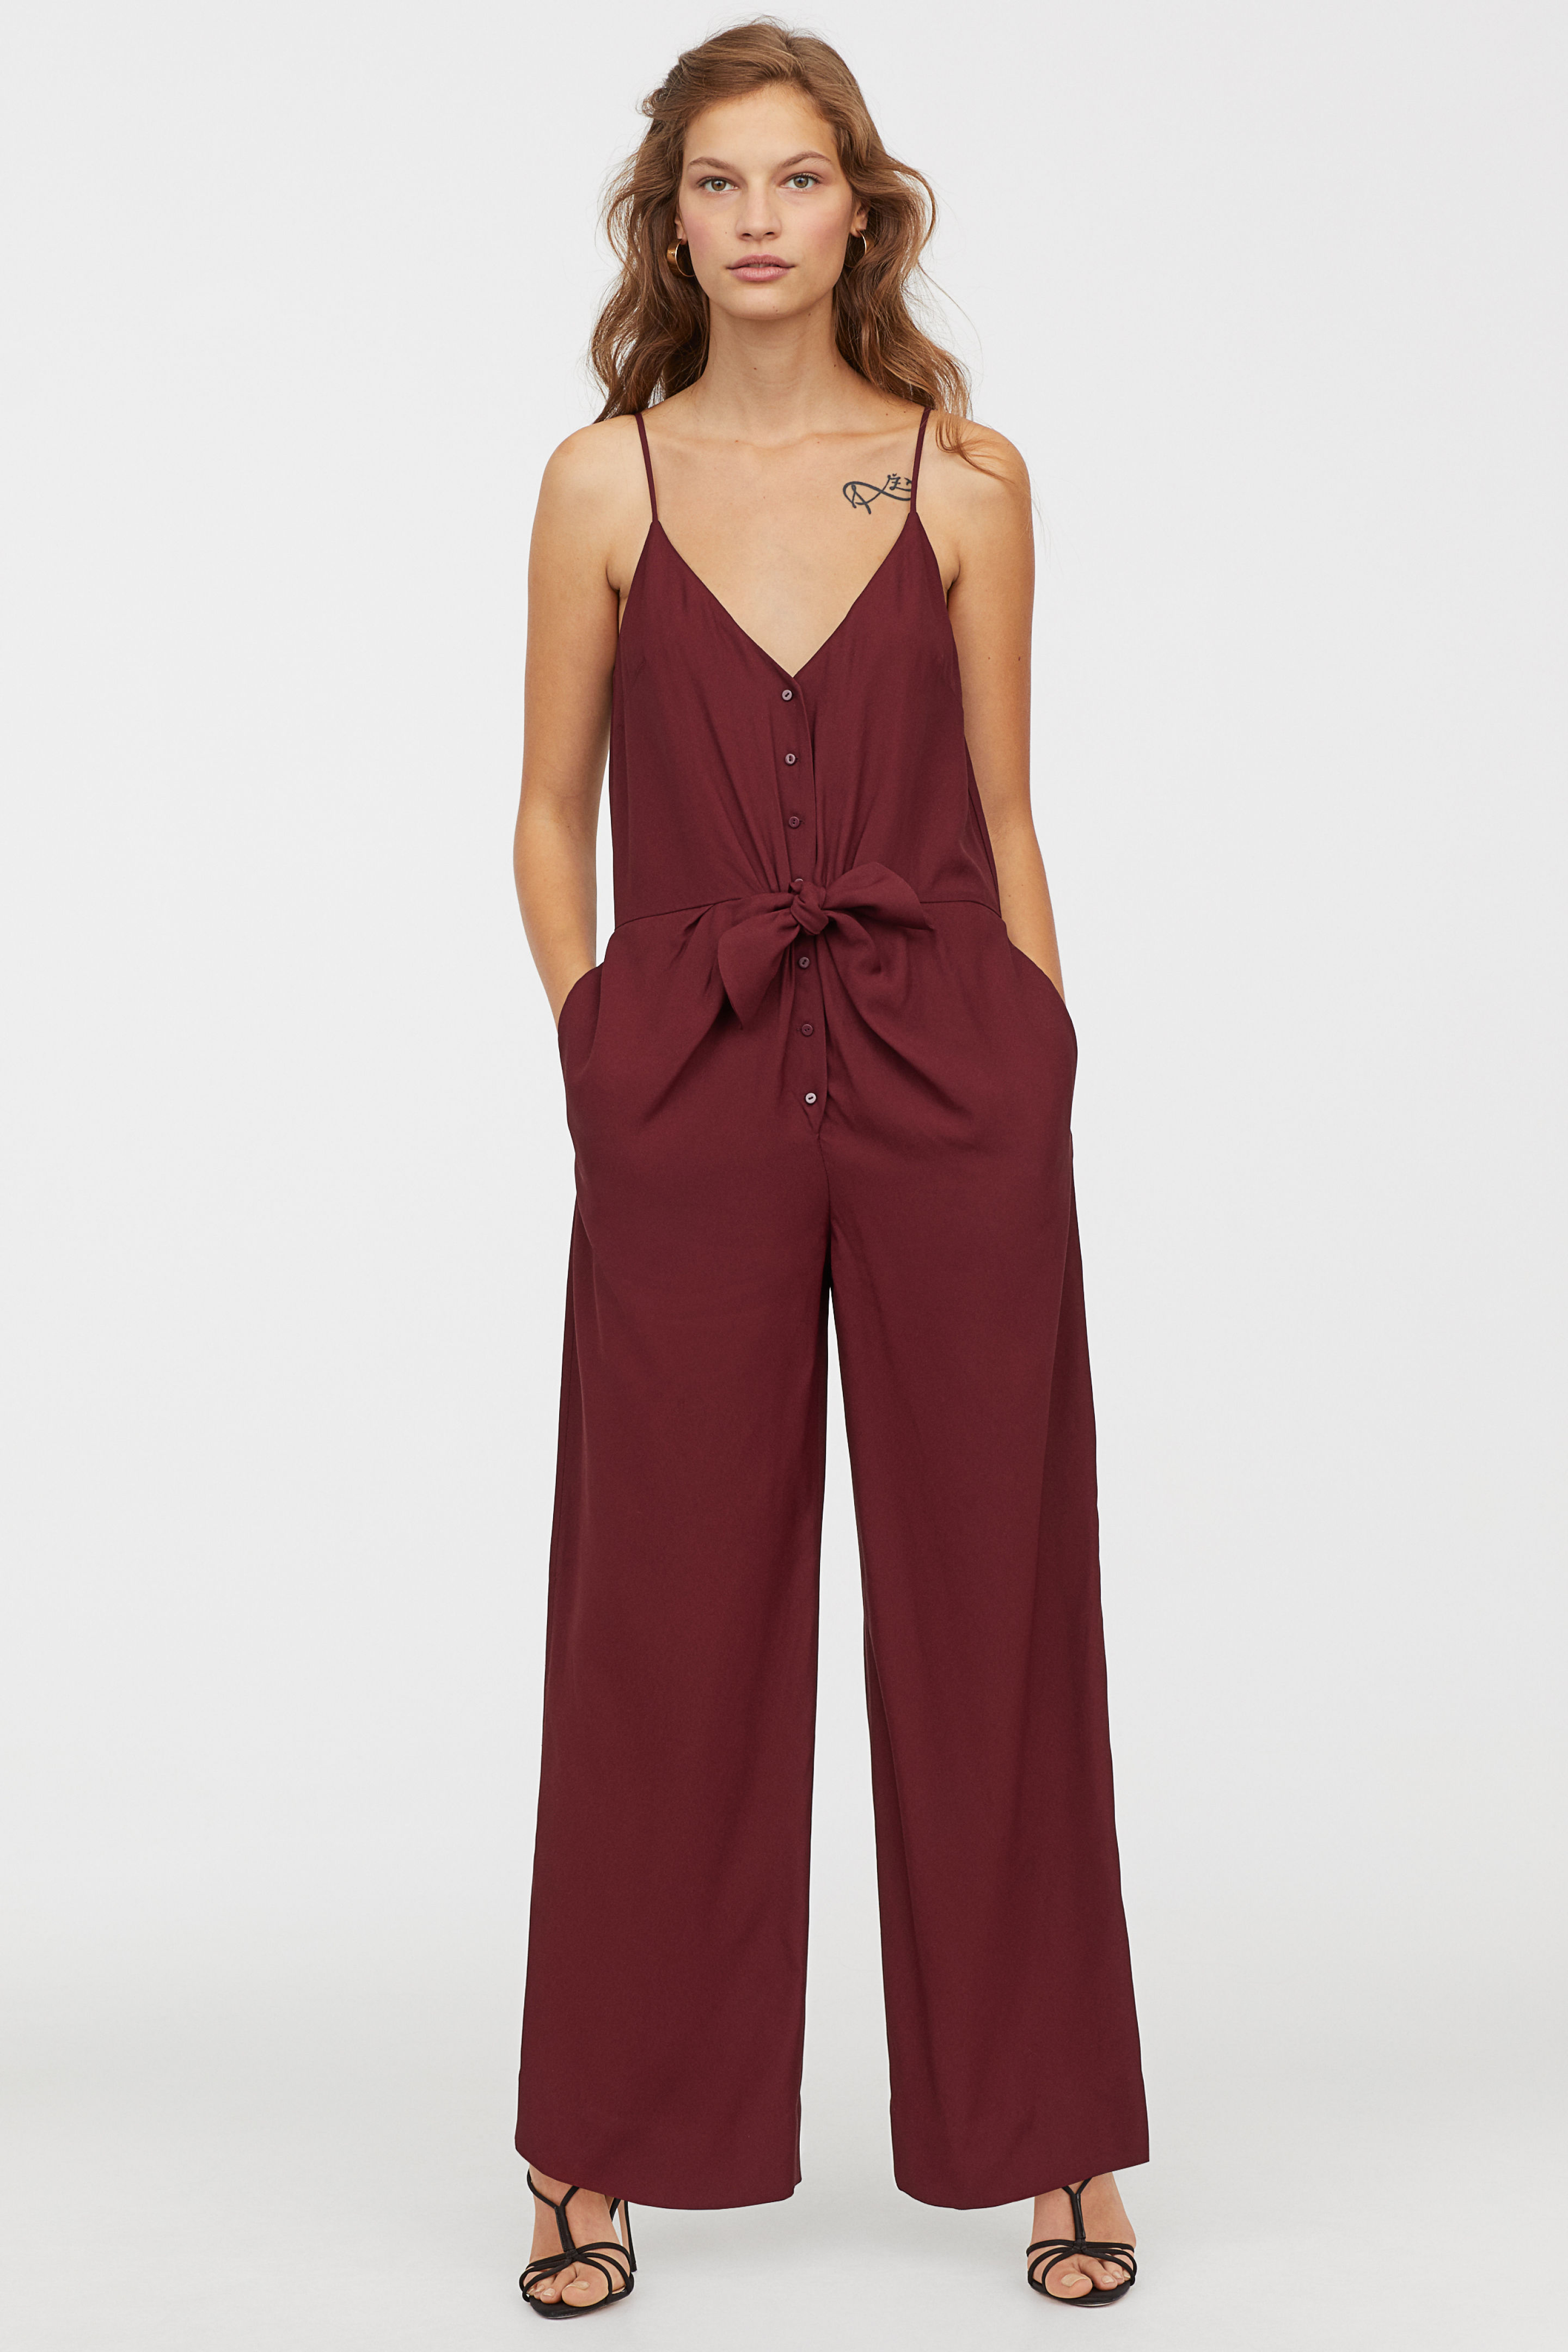 4-hm-jumpsuit-valentines-day-ideas-not-red-pink